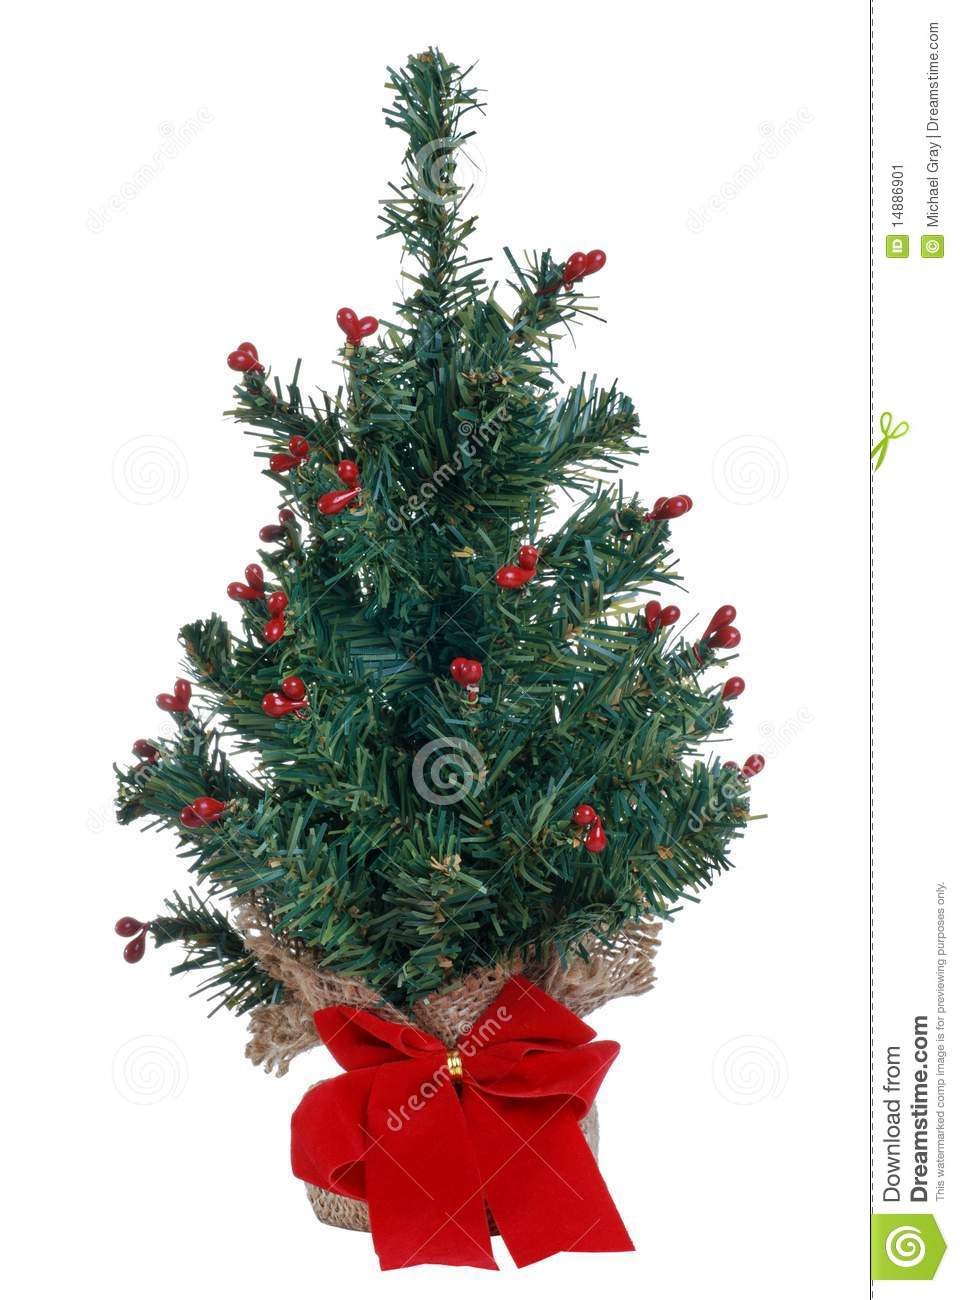 download fake mini christmas tree stock image image of decorative 14886901 - Mini Fake Christmas Tree